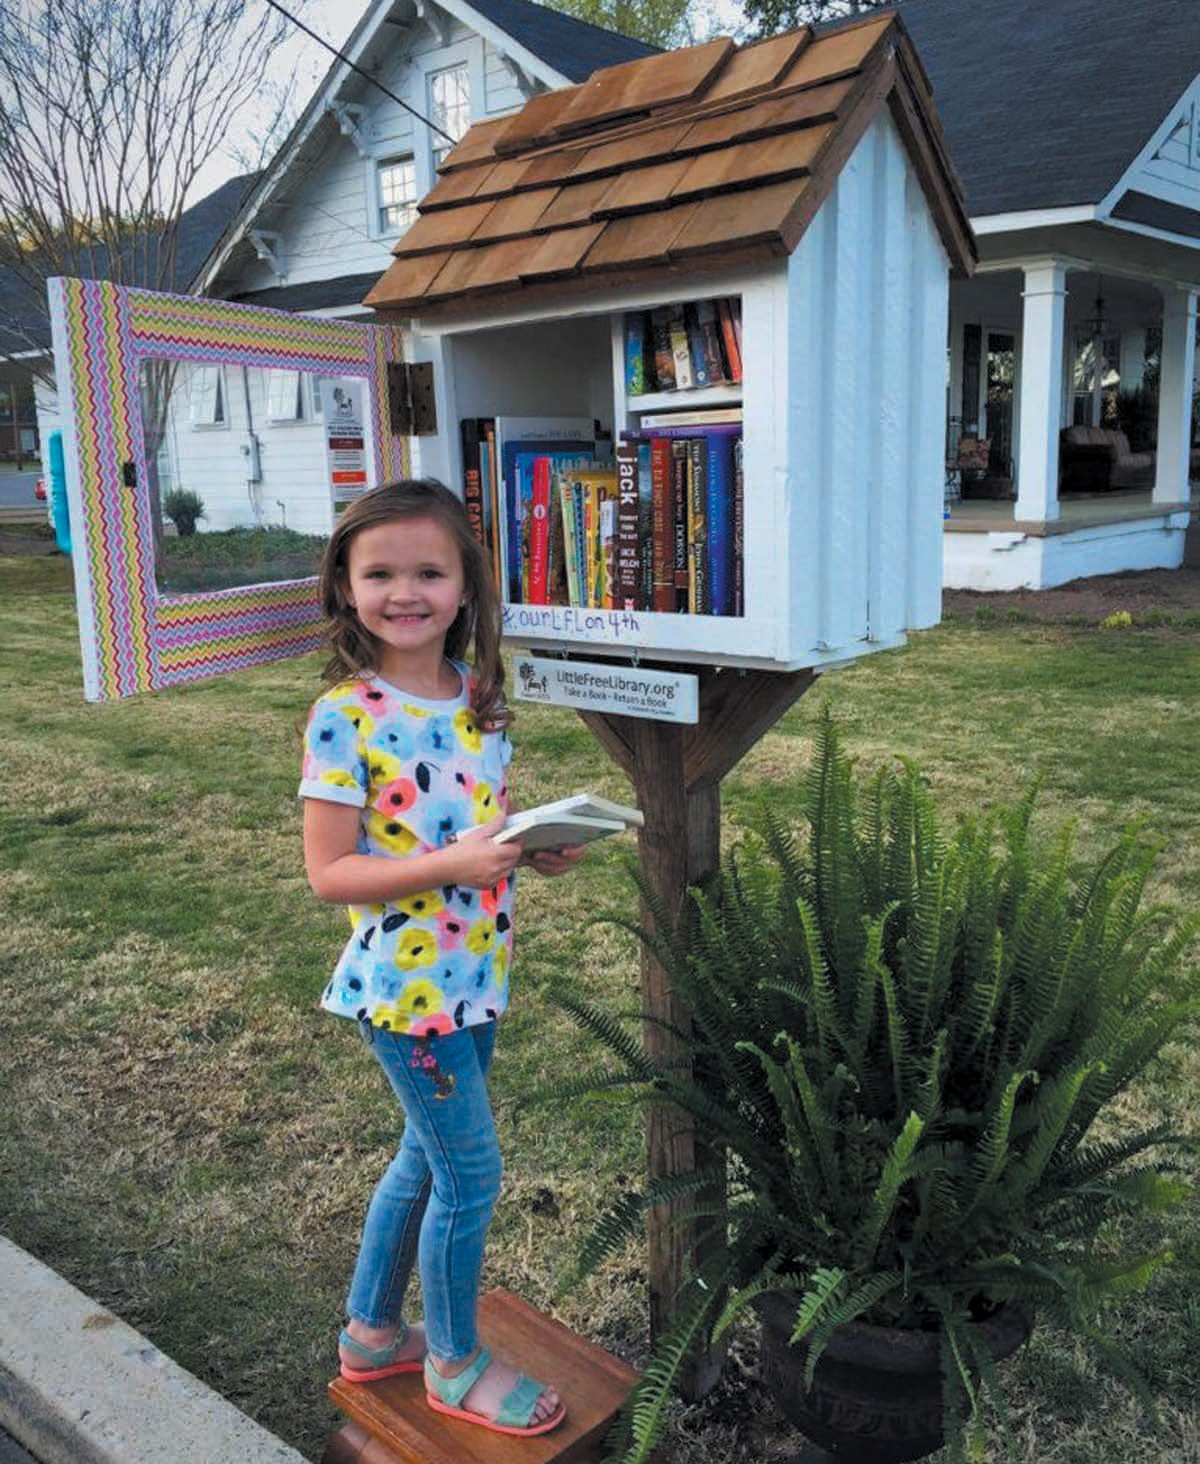 Jenna Shea, a kindergartner from OES, was the first vistitor to the Little Free Library.